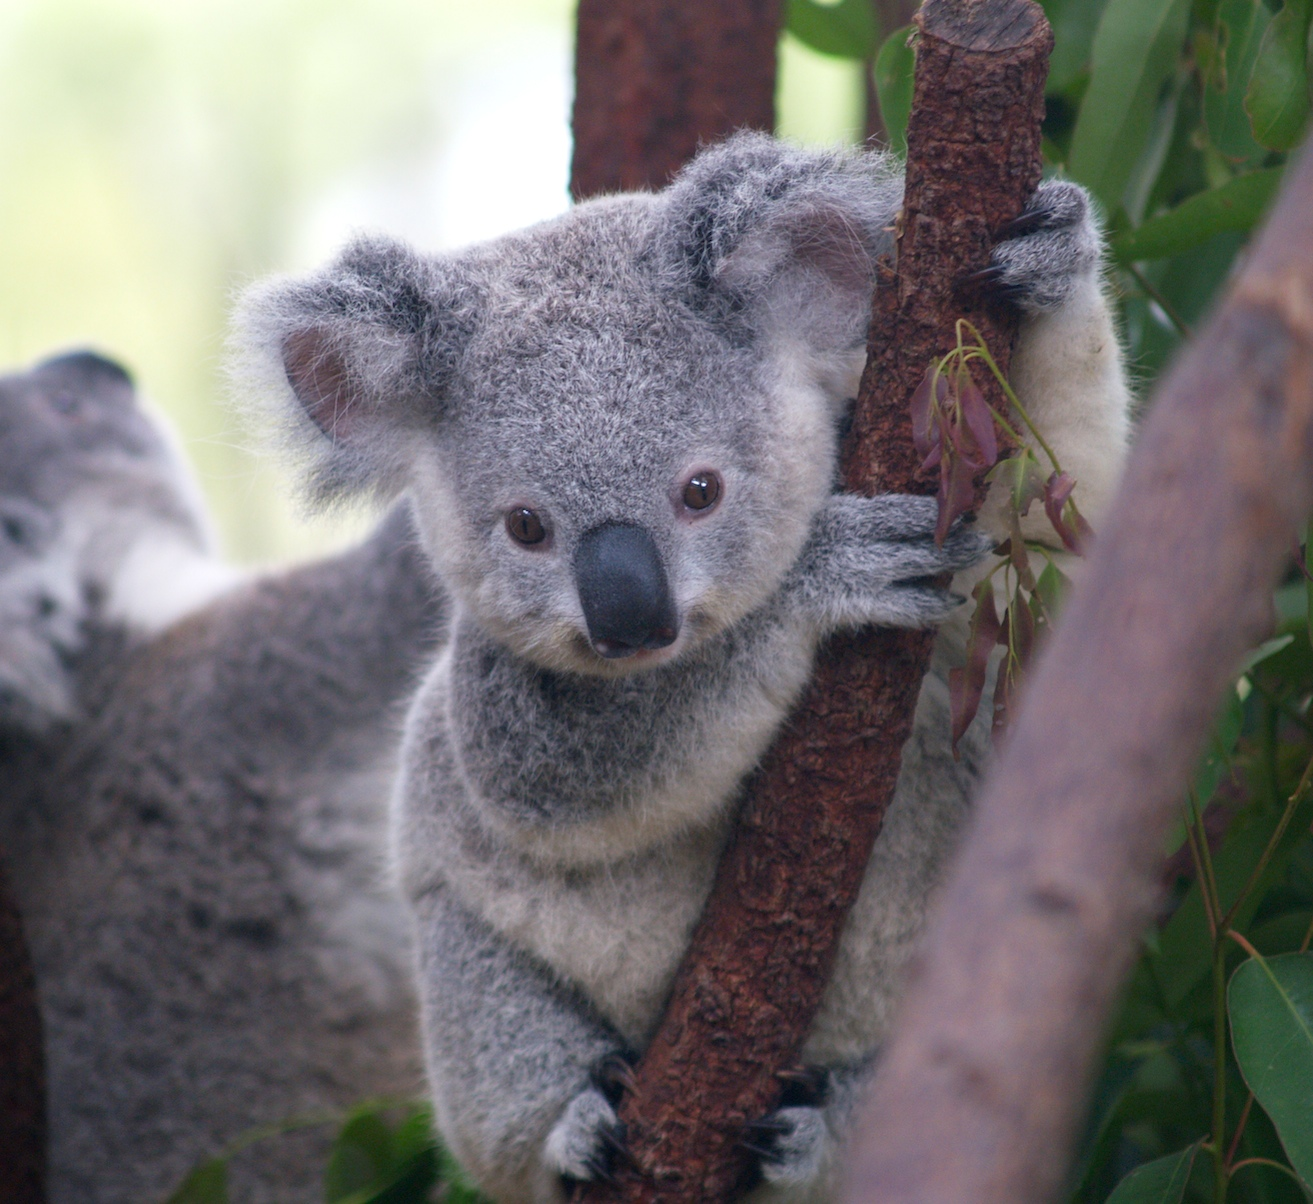 https://i2.wp.com/upload.wikimedia.org/wikipedia/commons/2/21/Cutest_Koala.jpg